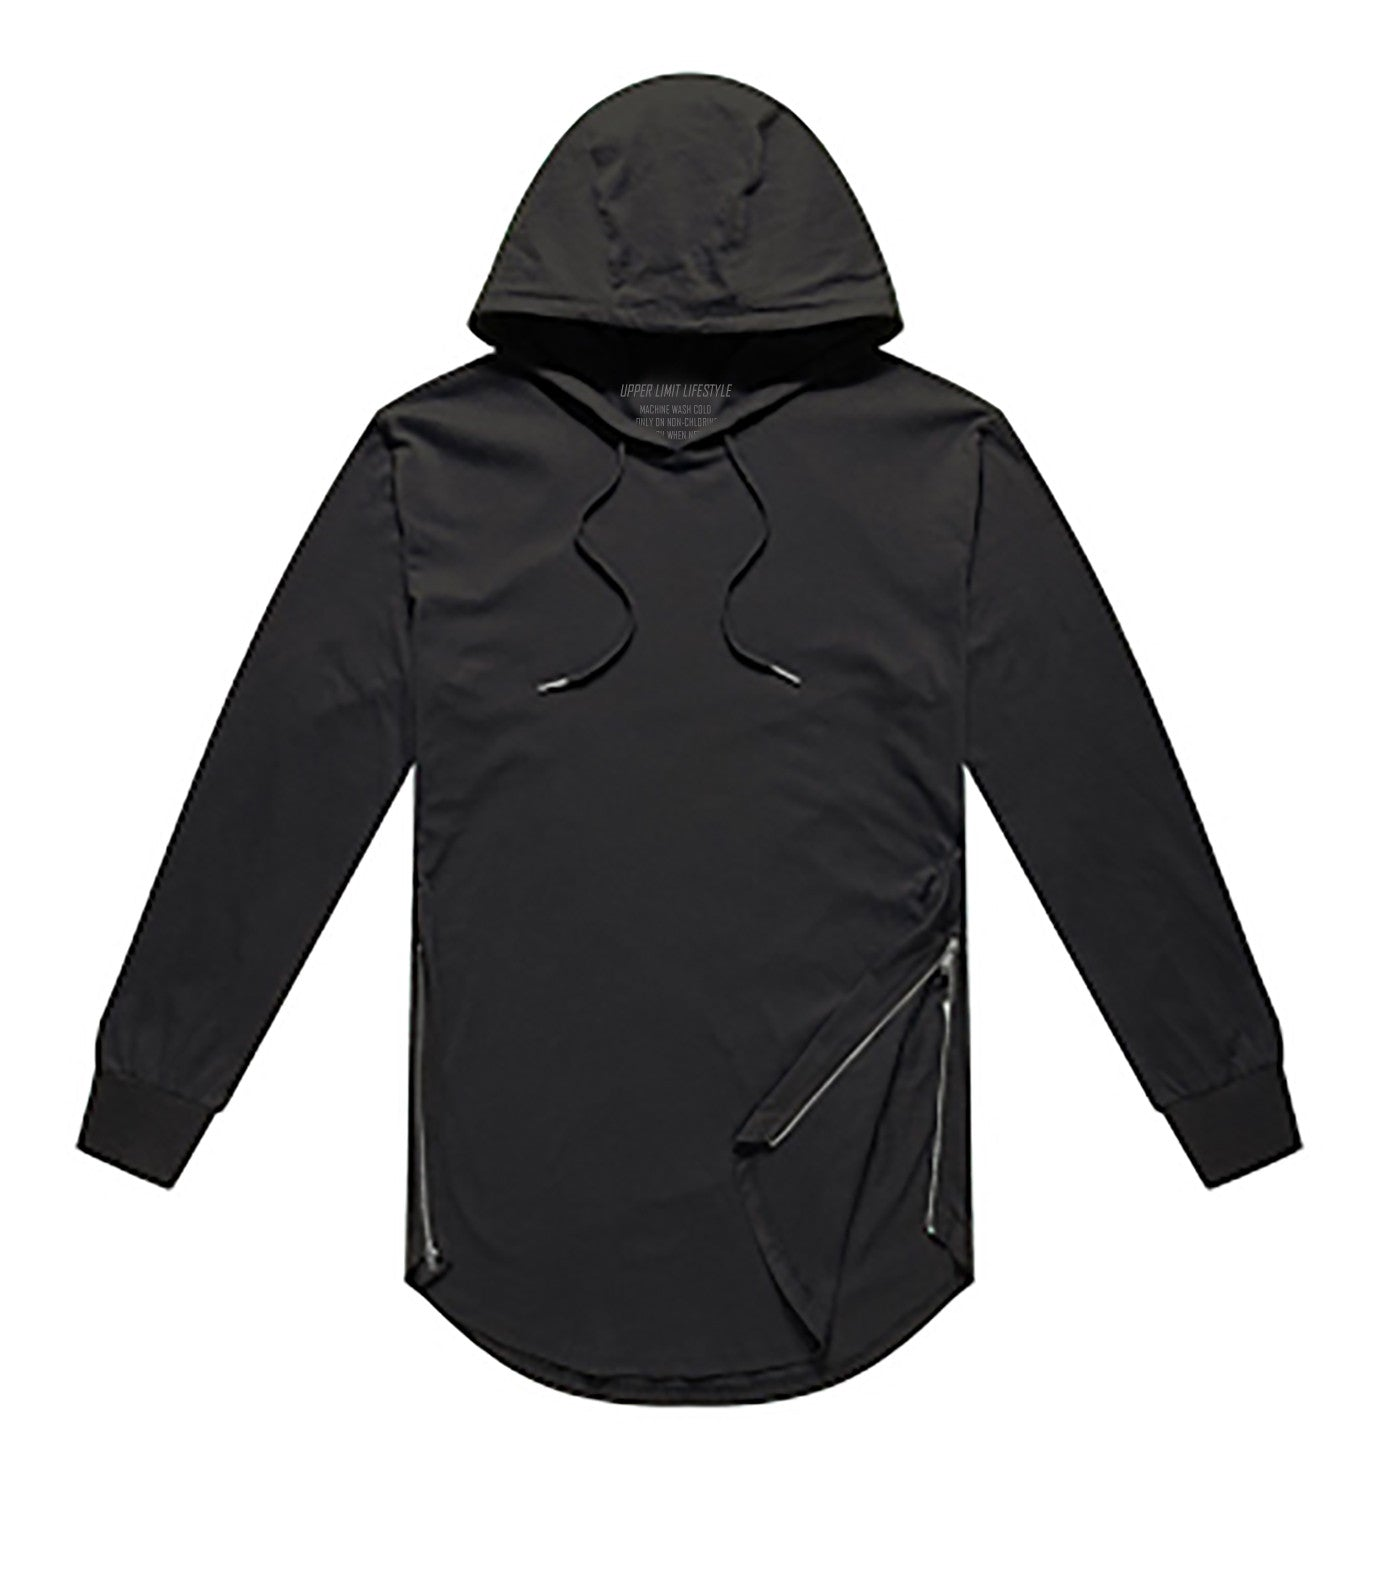 Performance Curved Hem Hoodie Long Sleeve Black